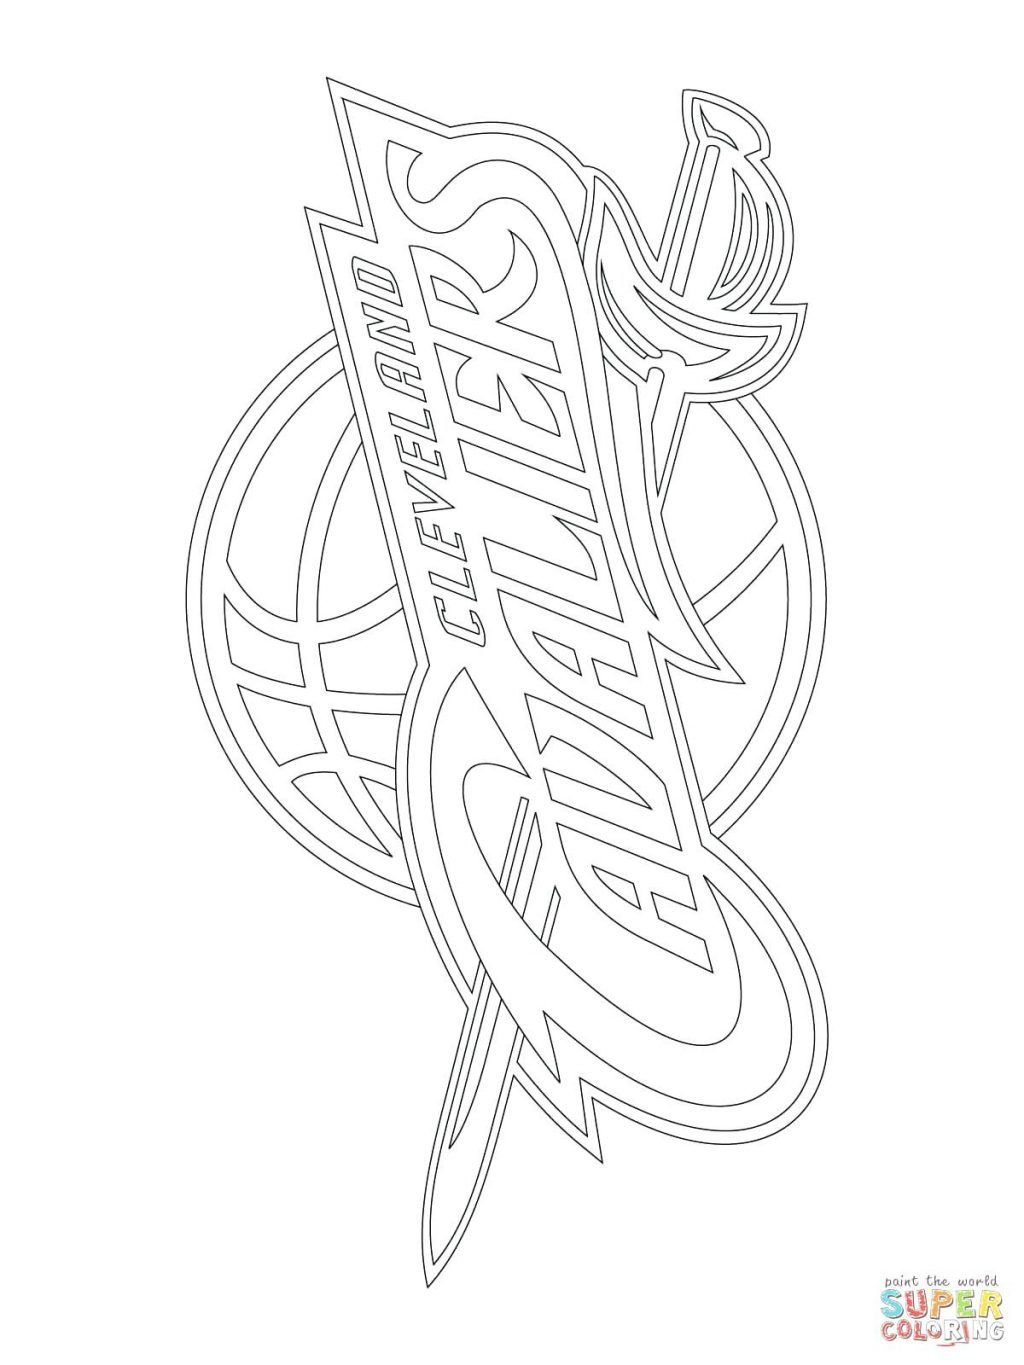 indianapolis colts coloring pages indiana jones coloring pages at getdrawings free download pages coloring colts indianapolis